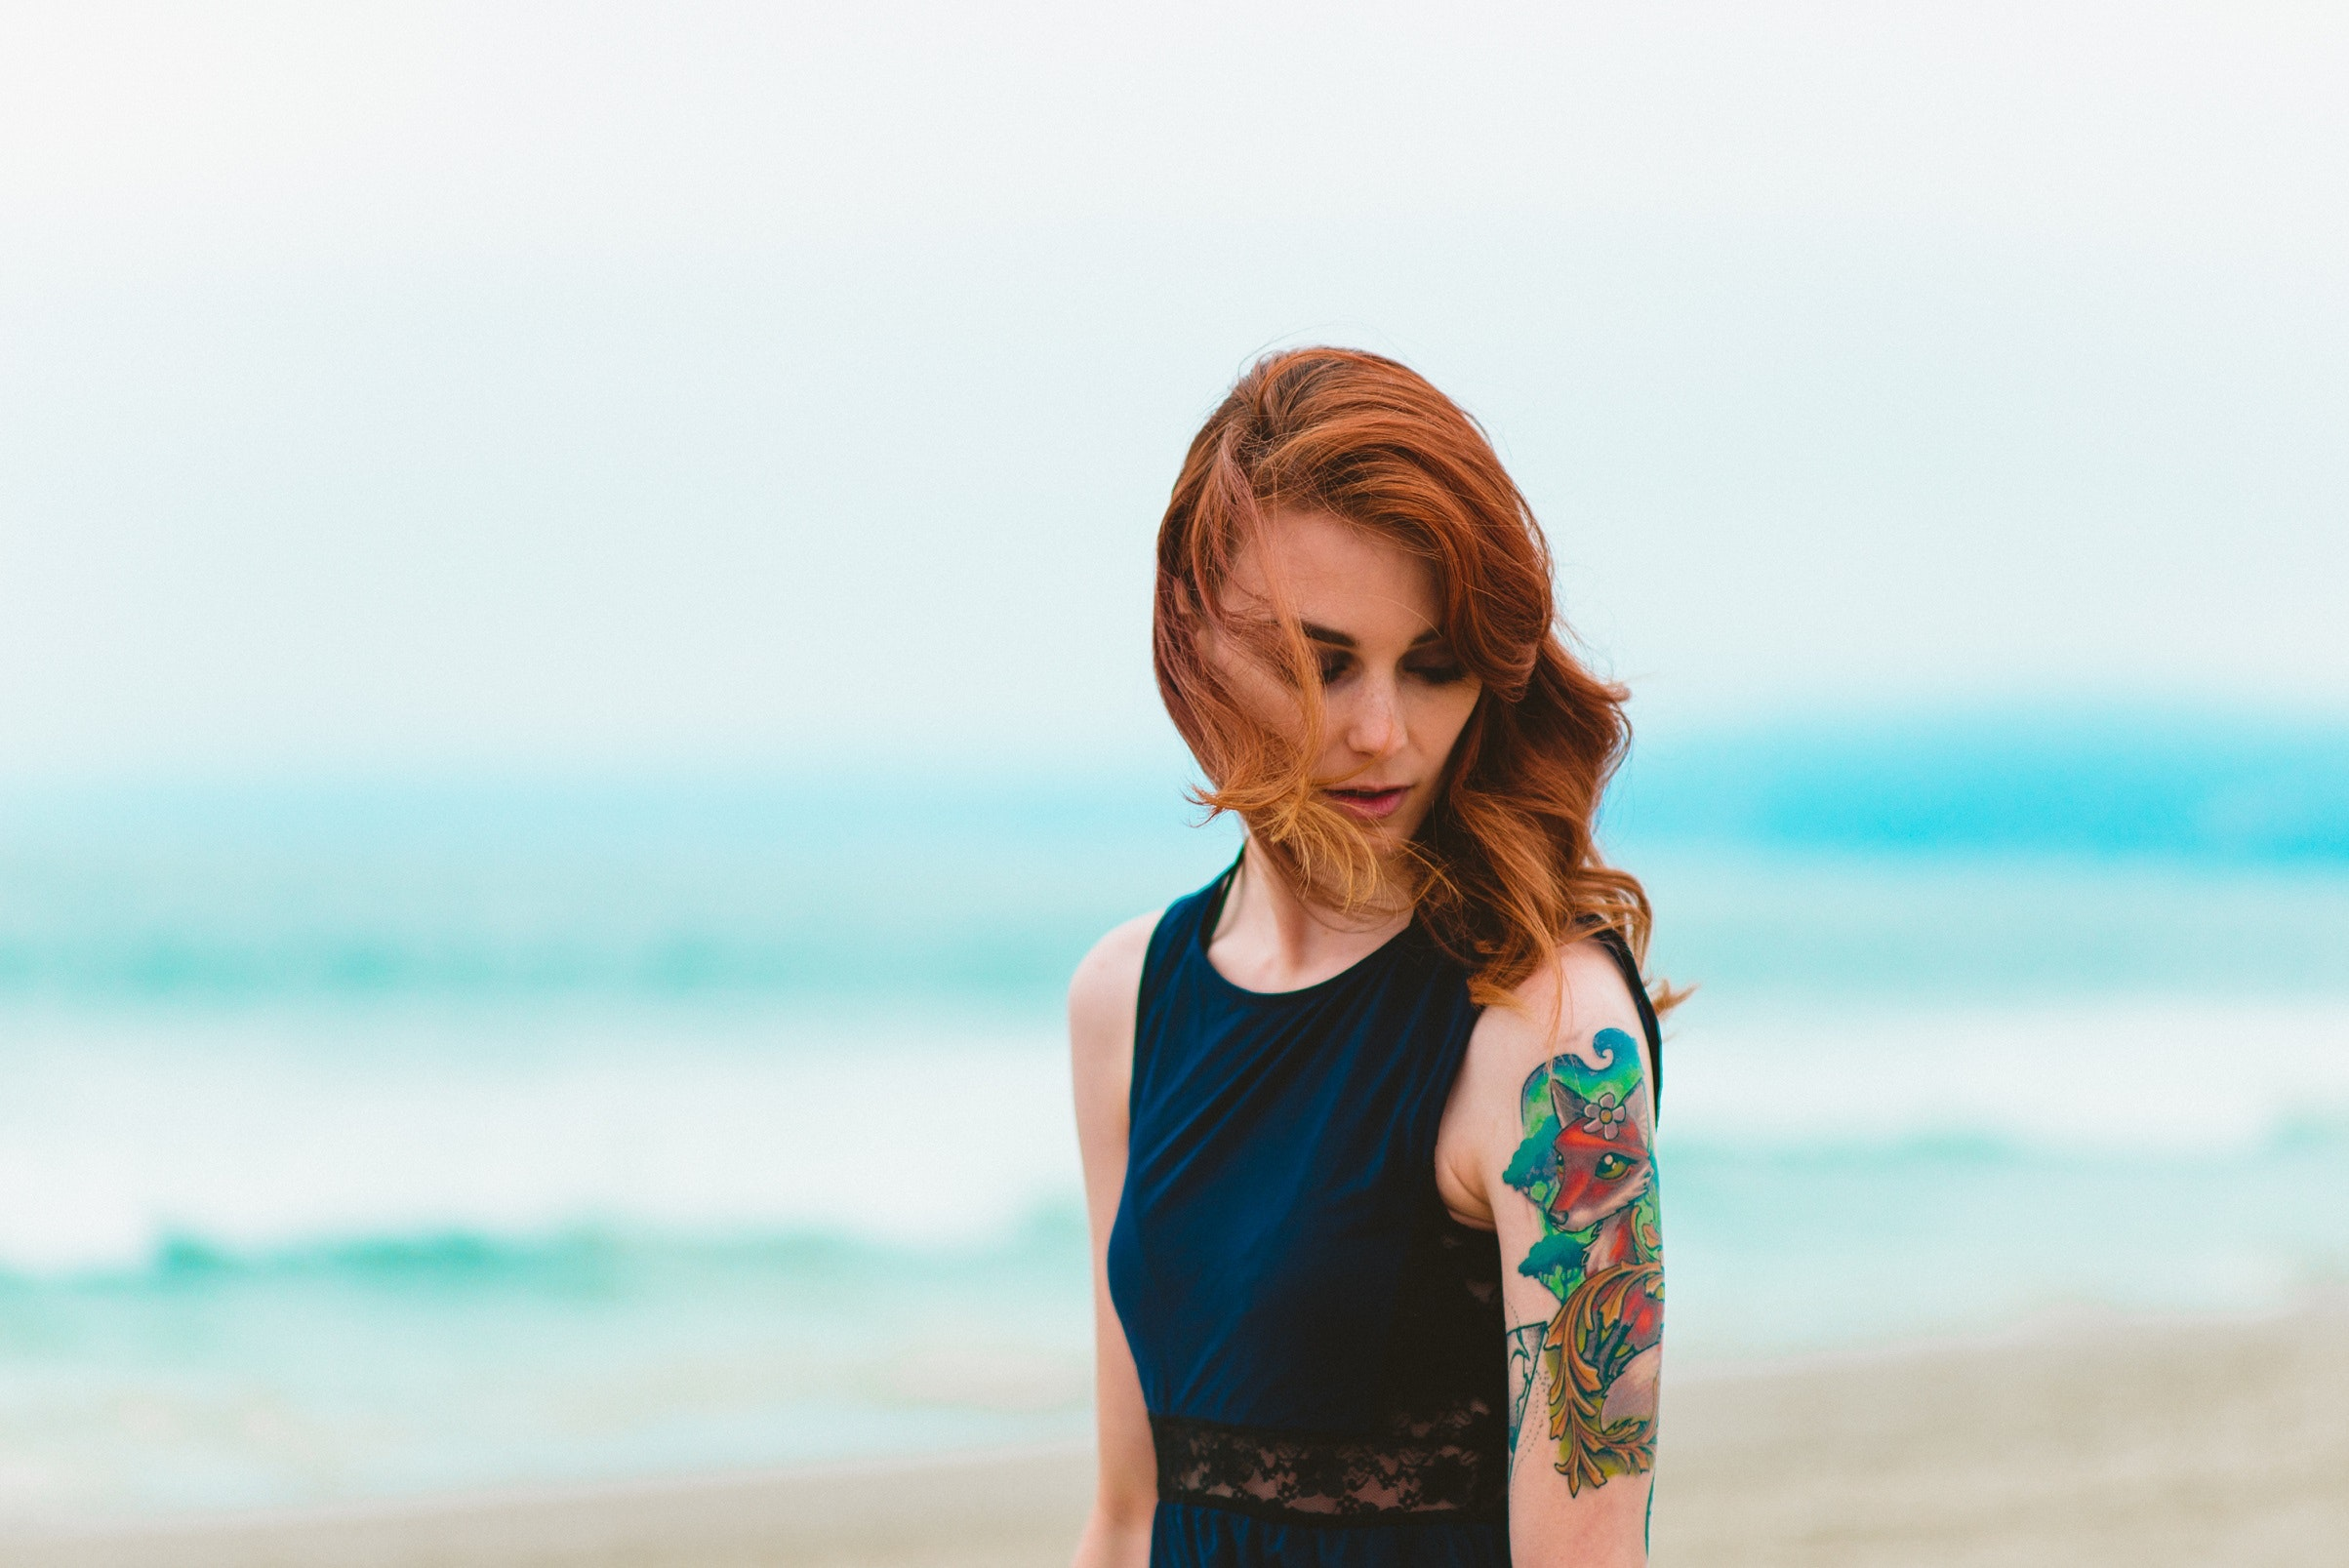 Long-term care - What are the pro tips to keep my tattoos looking fresh for years to come? How will different tattoos change with age?